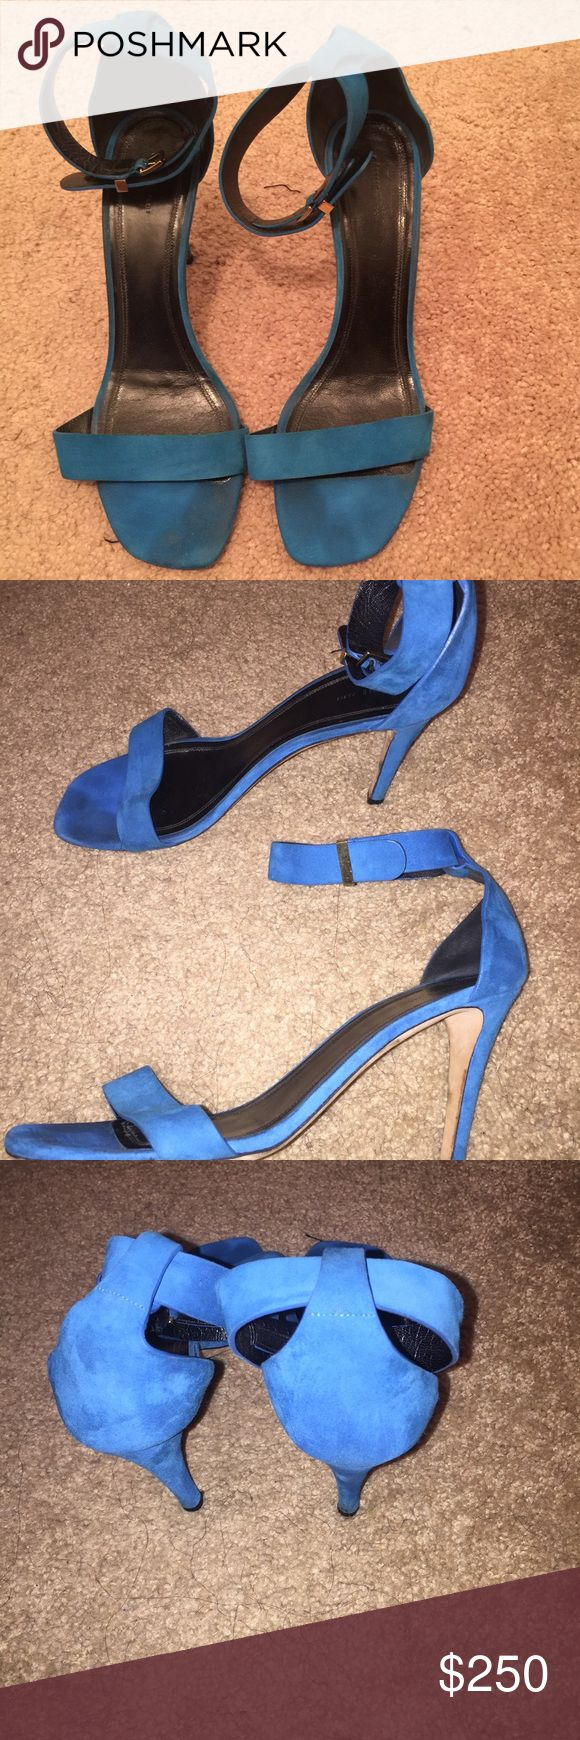 Celine Turquoise Sandals. Gently Used. Sz 40 Gently used, sophisticated sandals. Celine Shoes Sandals